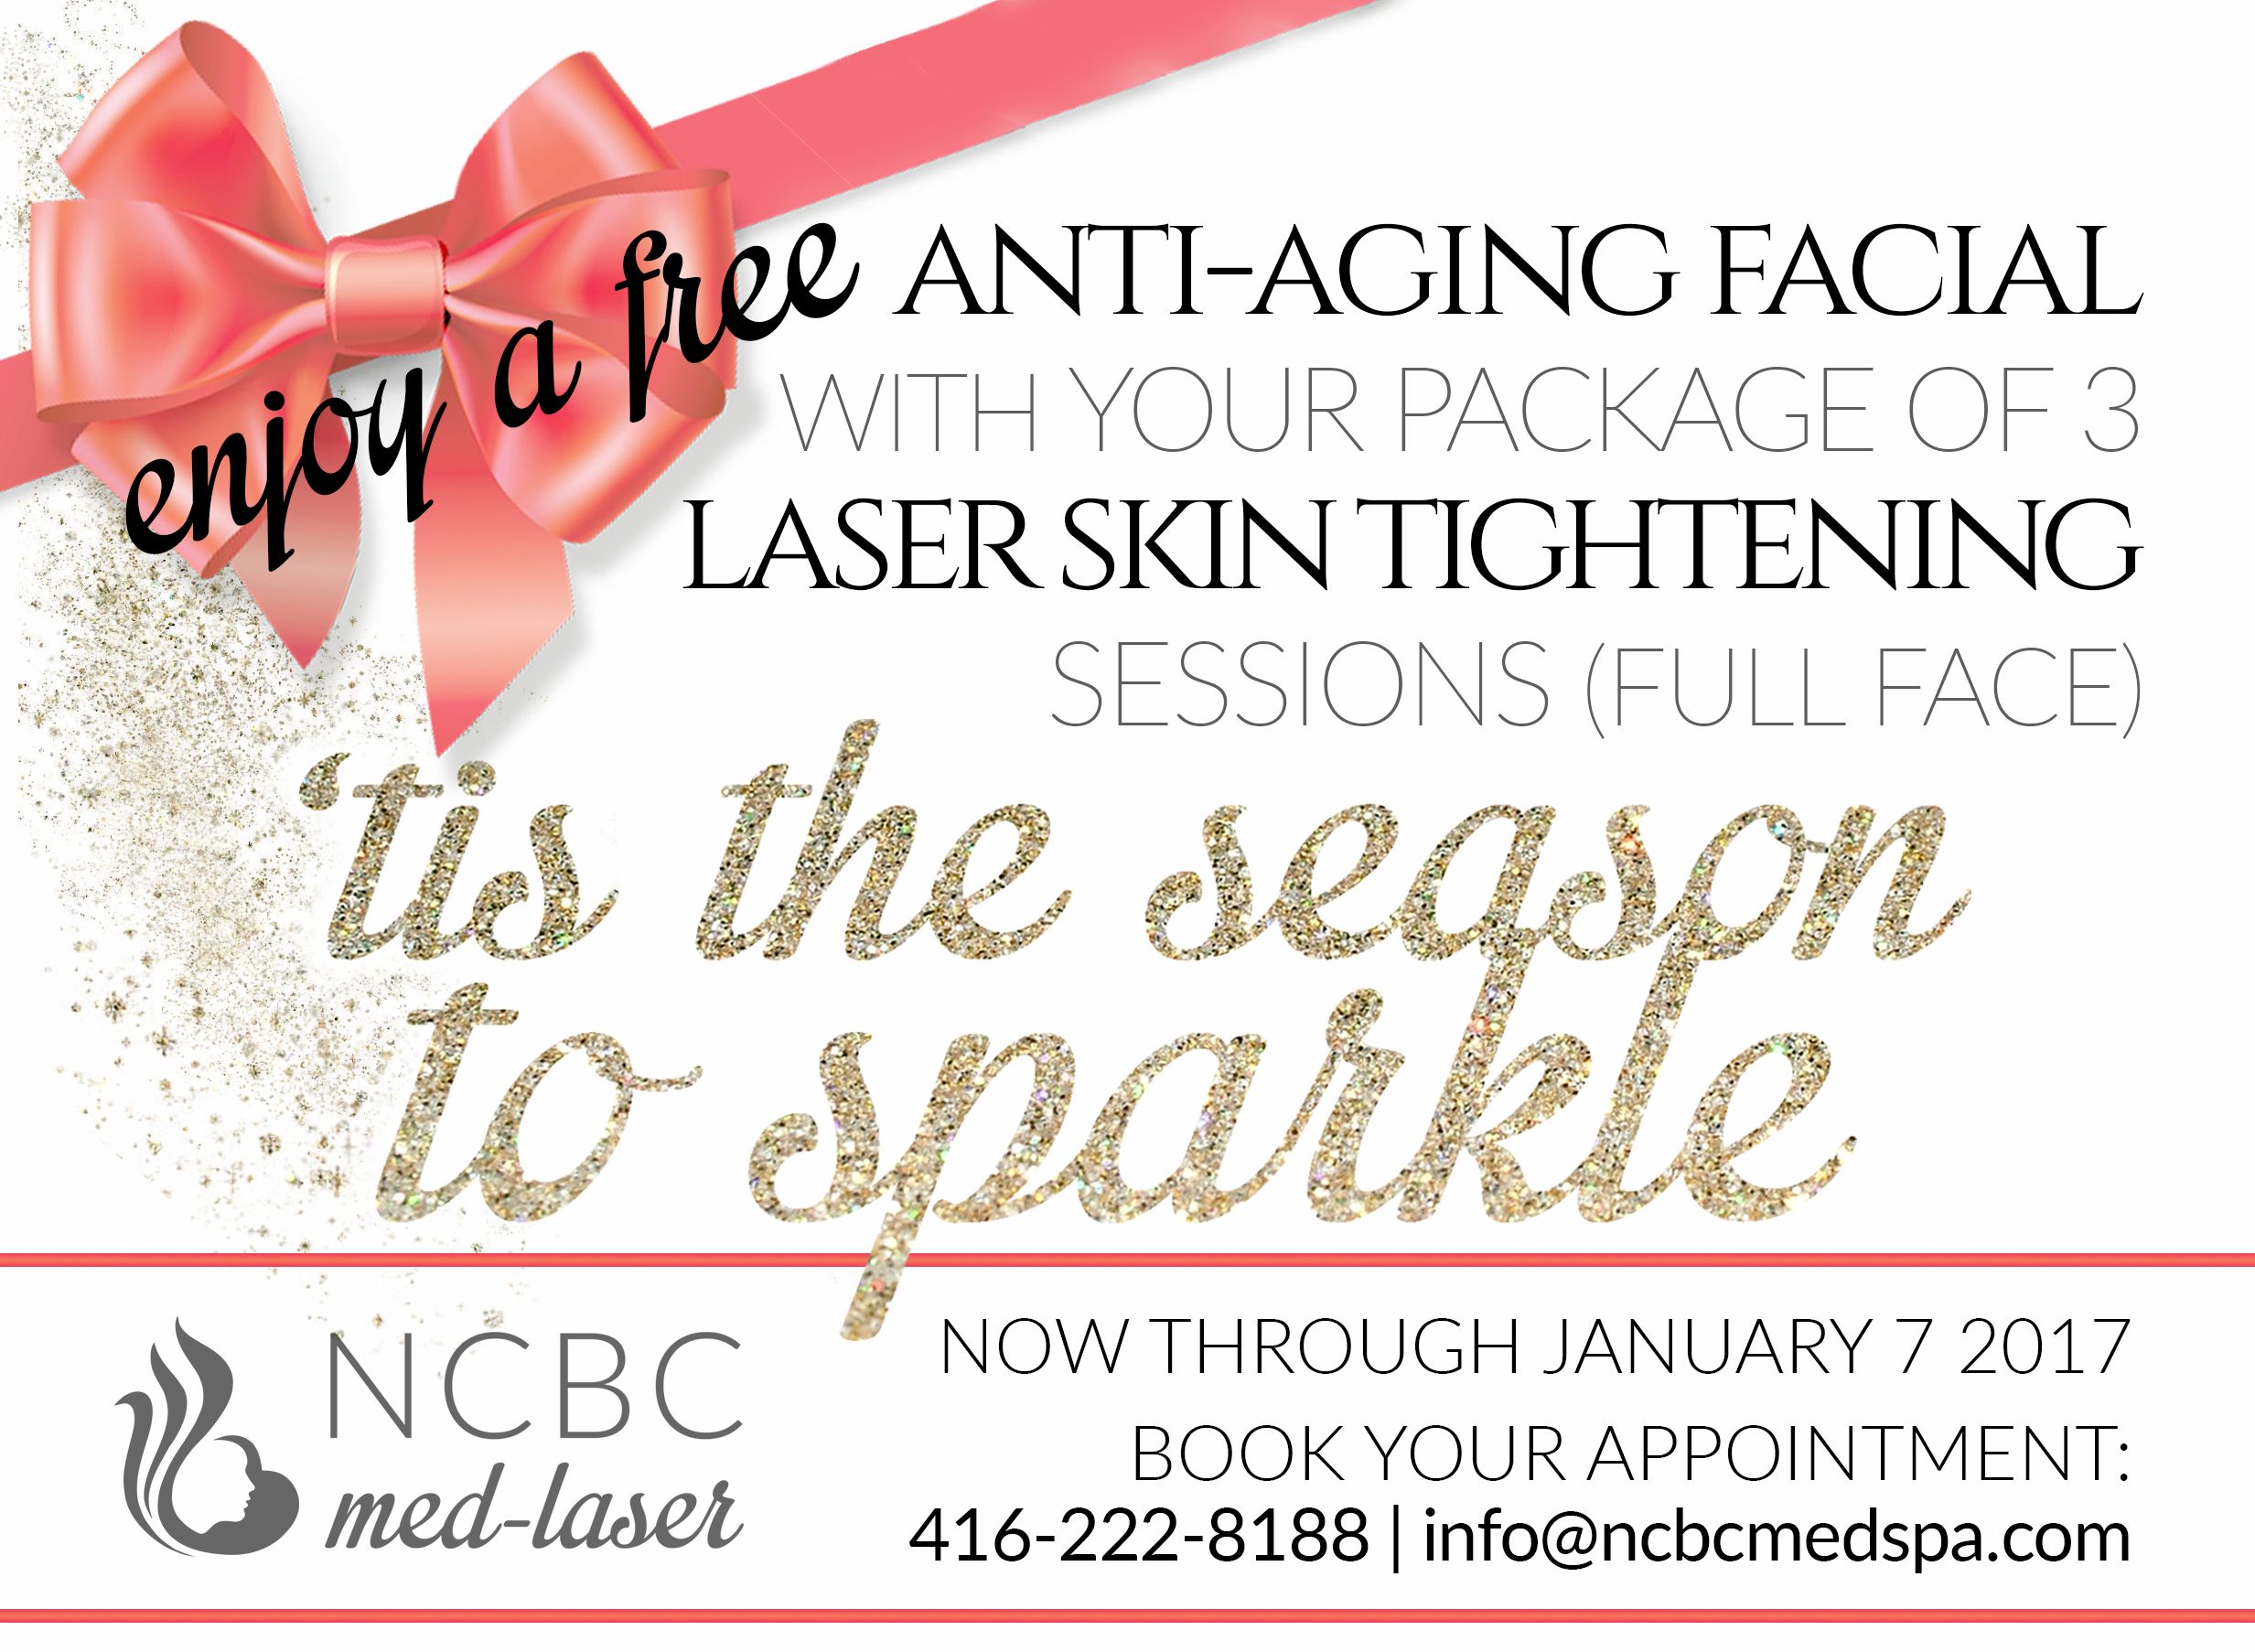 laser skin tightening promotion